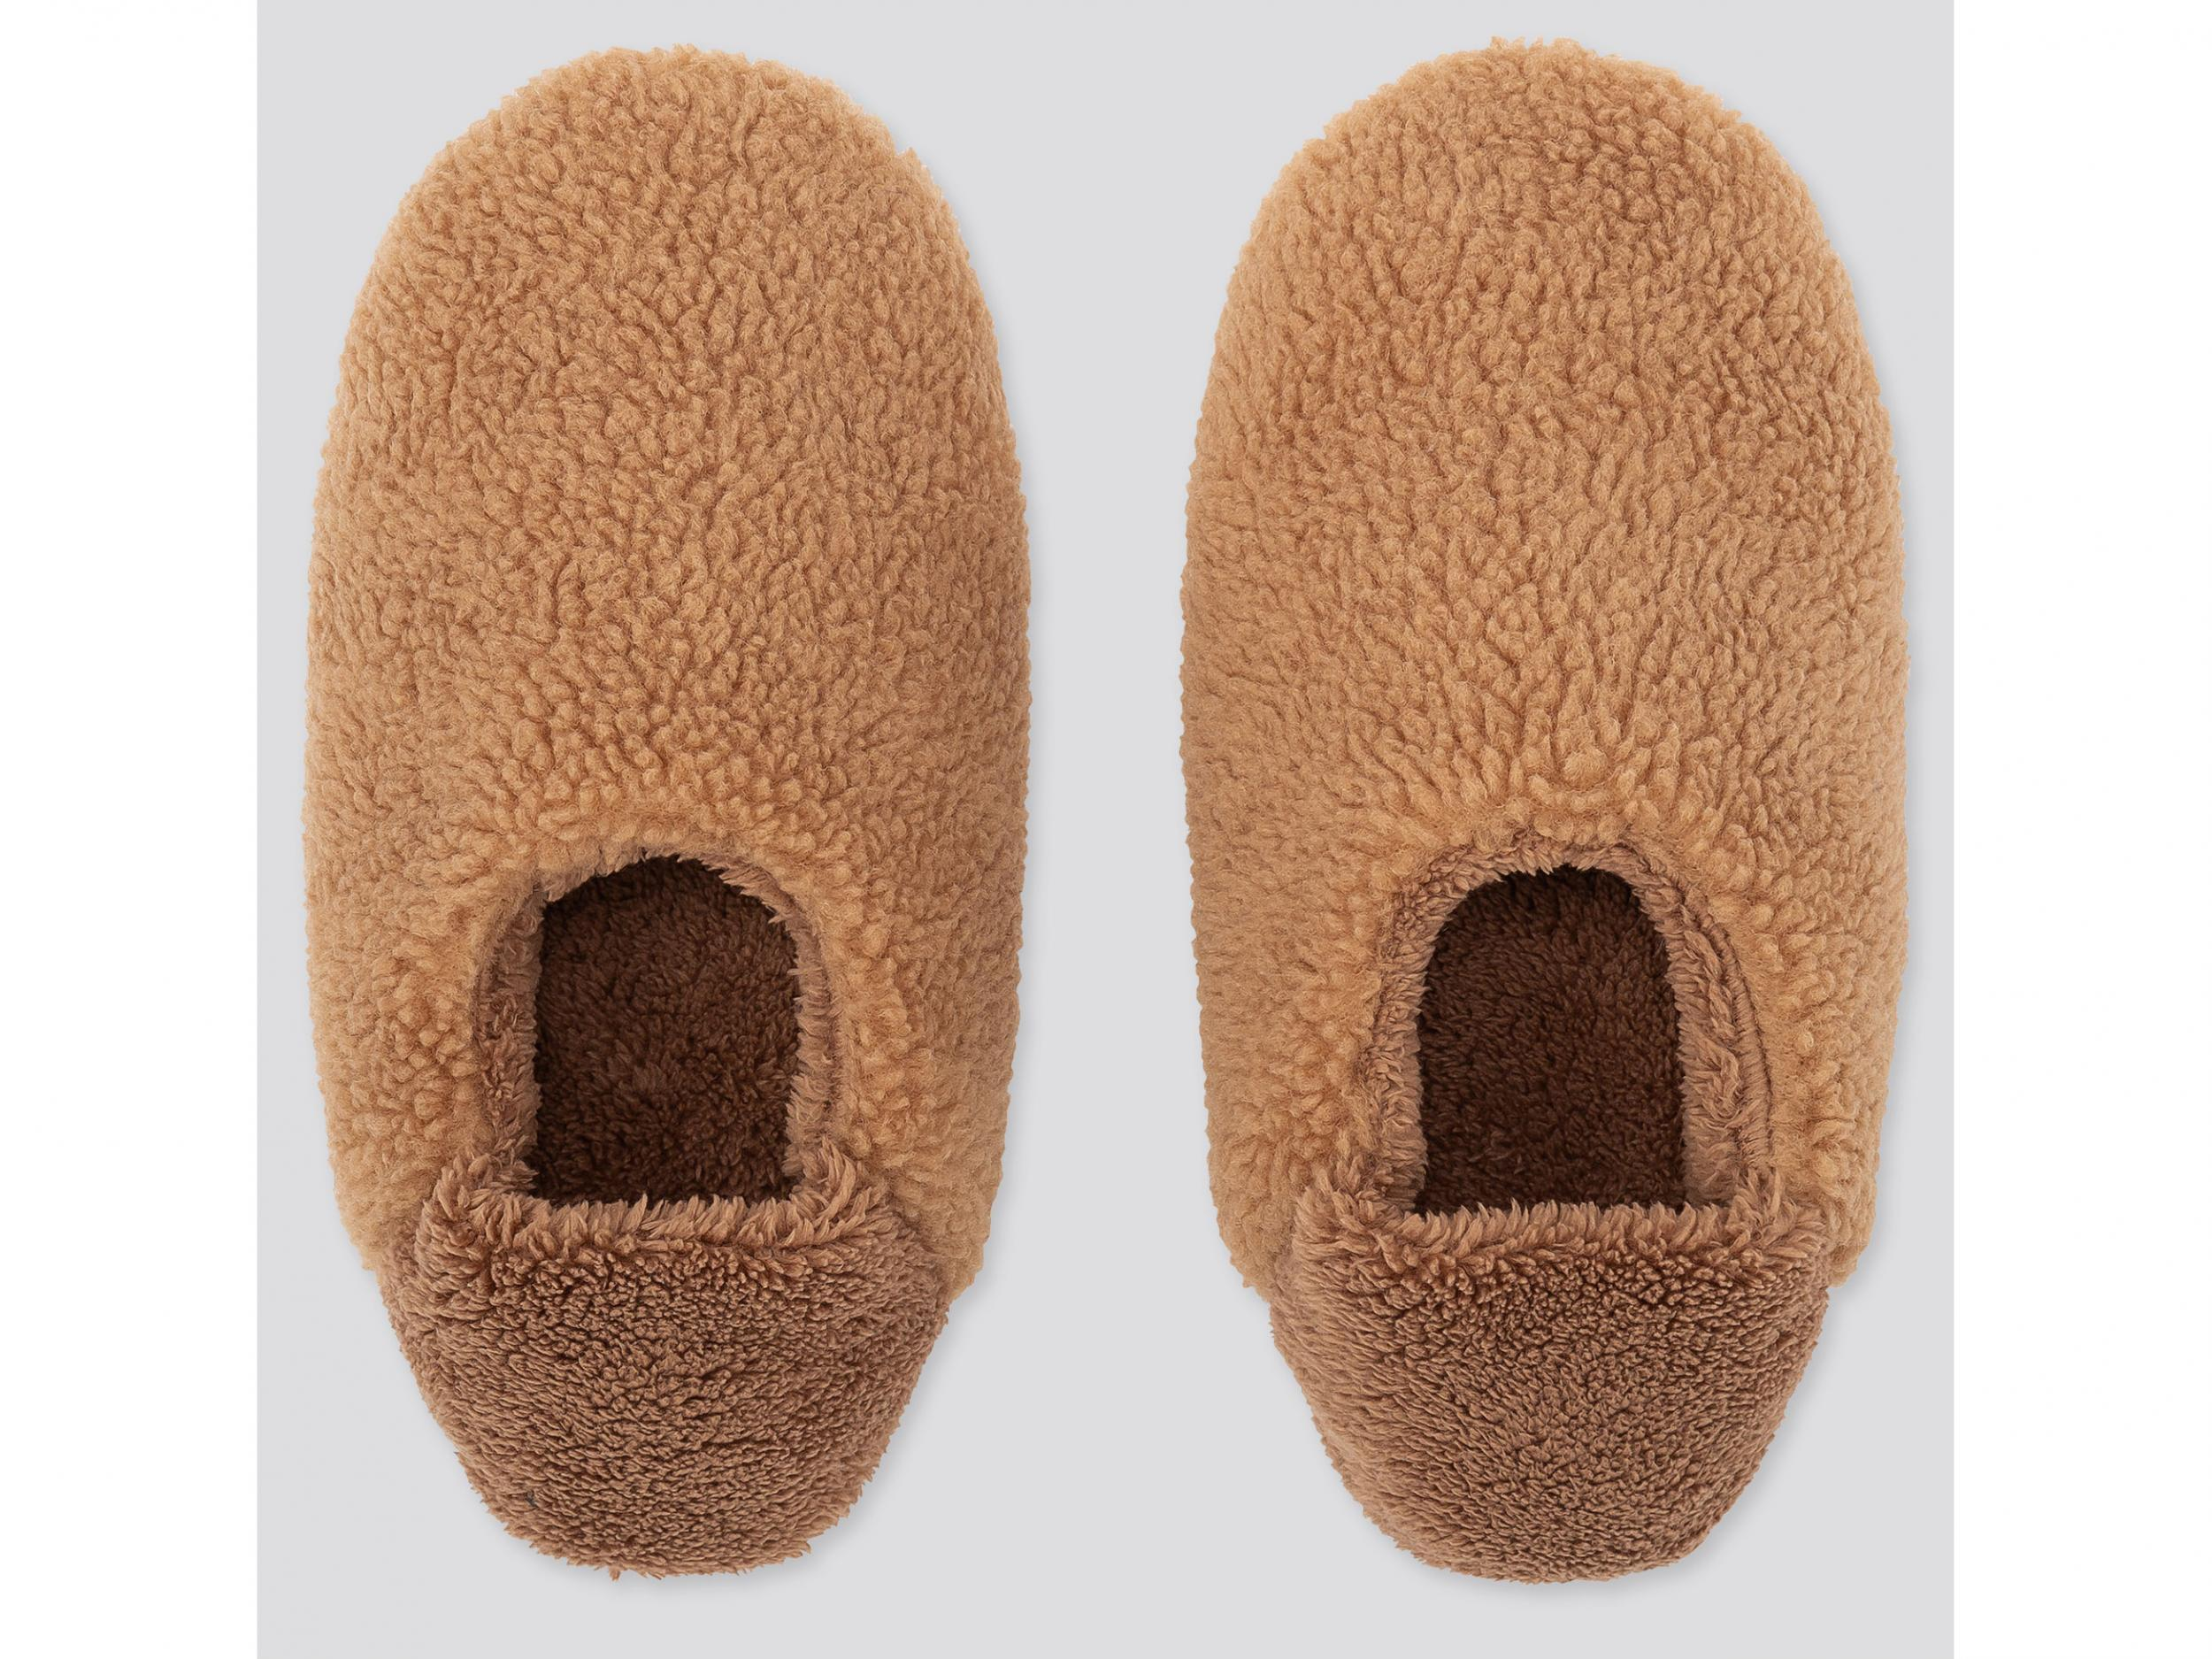 Fit Cosy Bootie Slippers Blue Great British Slippers Womens Ladies Extra Wide E